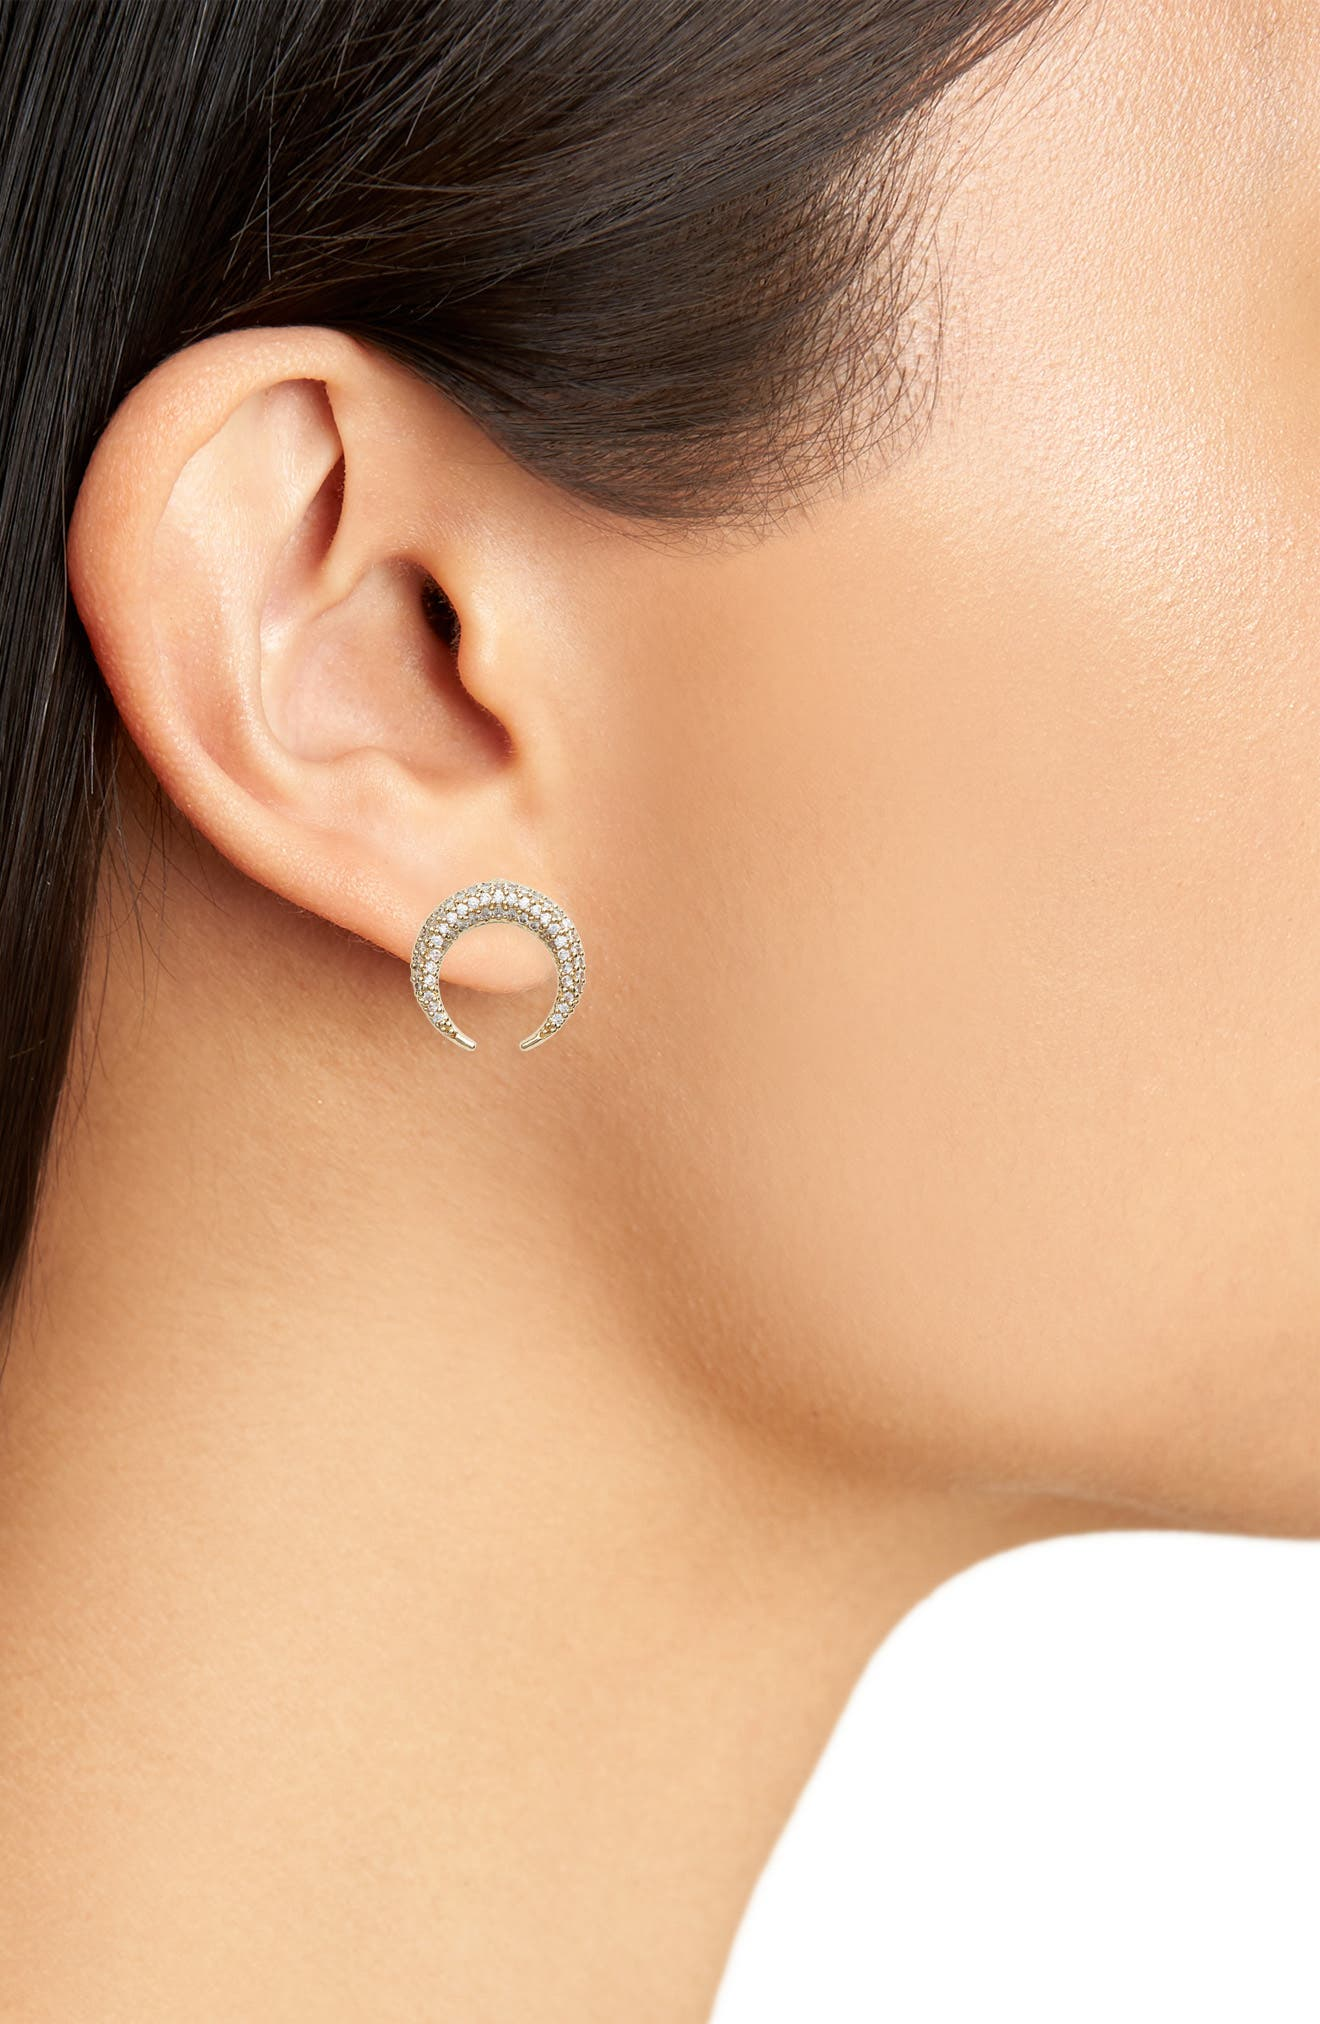 Crystal Horn Earrings,                             Alternate thumbnail 2, color,                             710